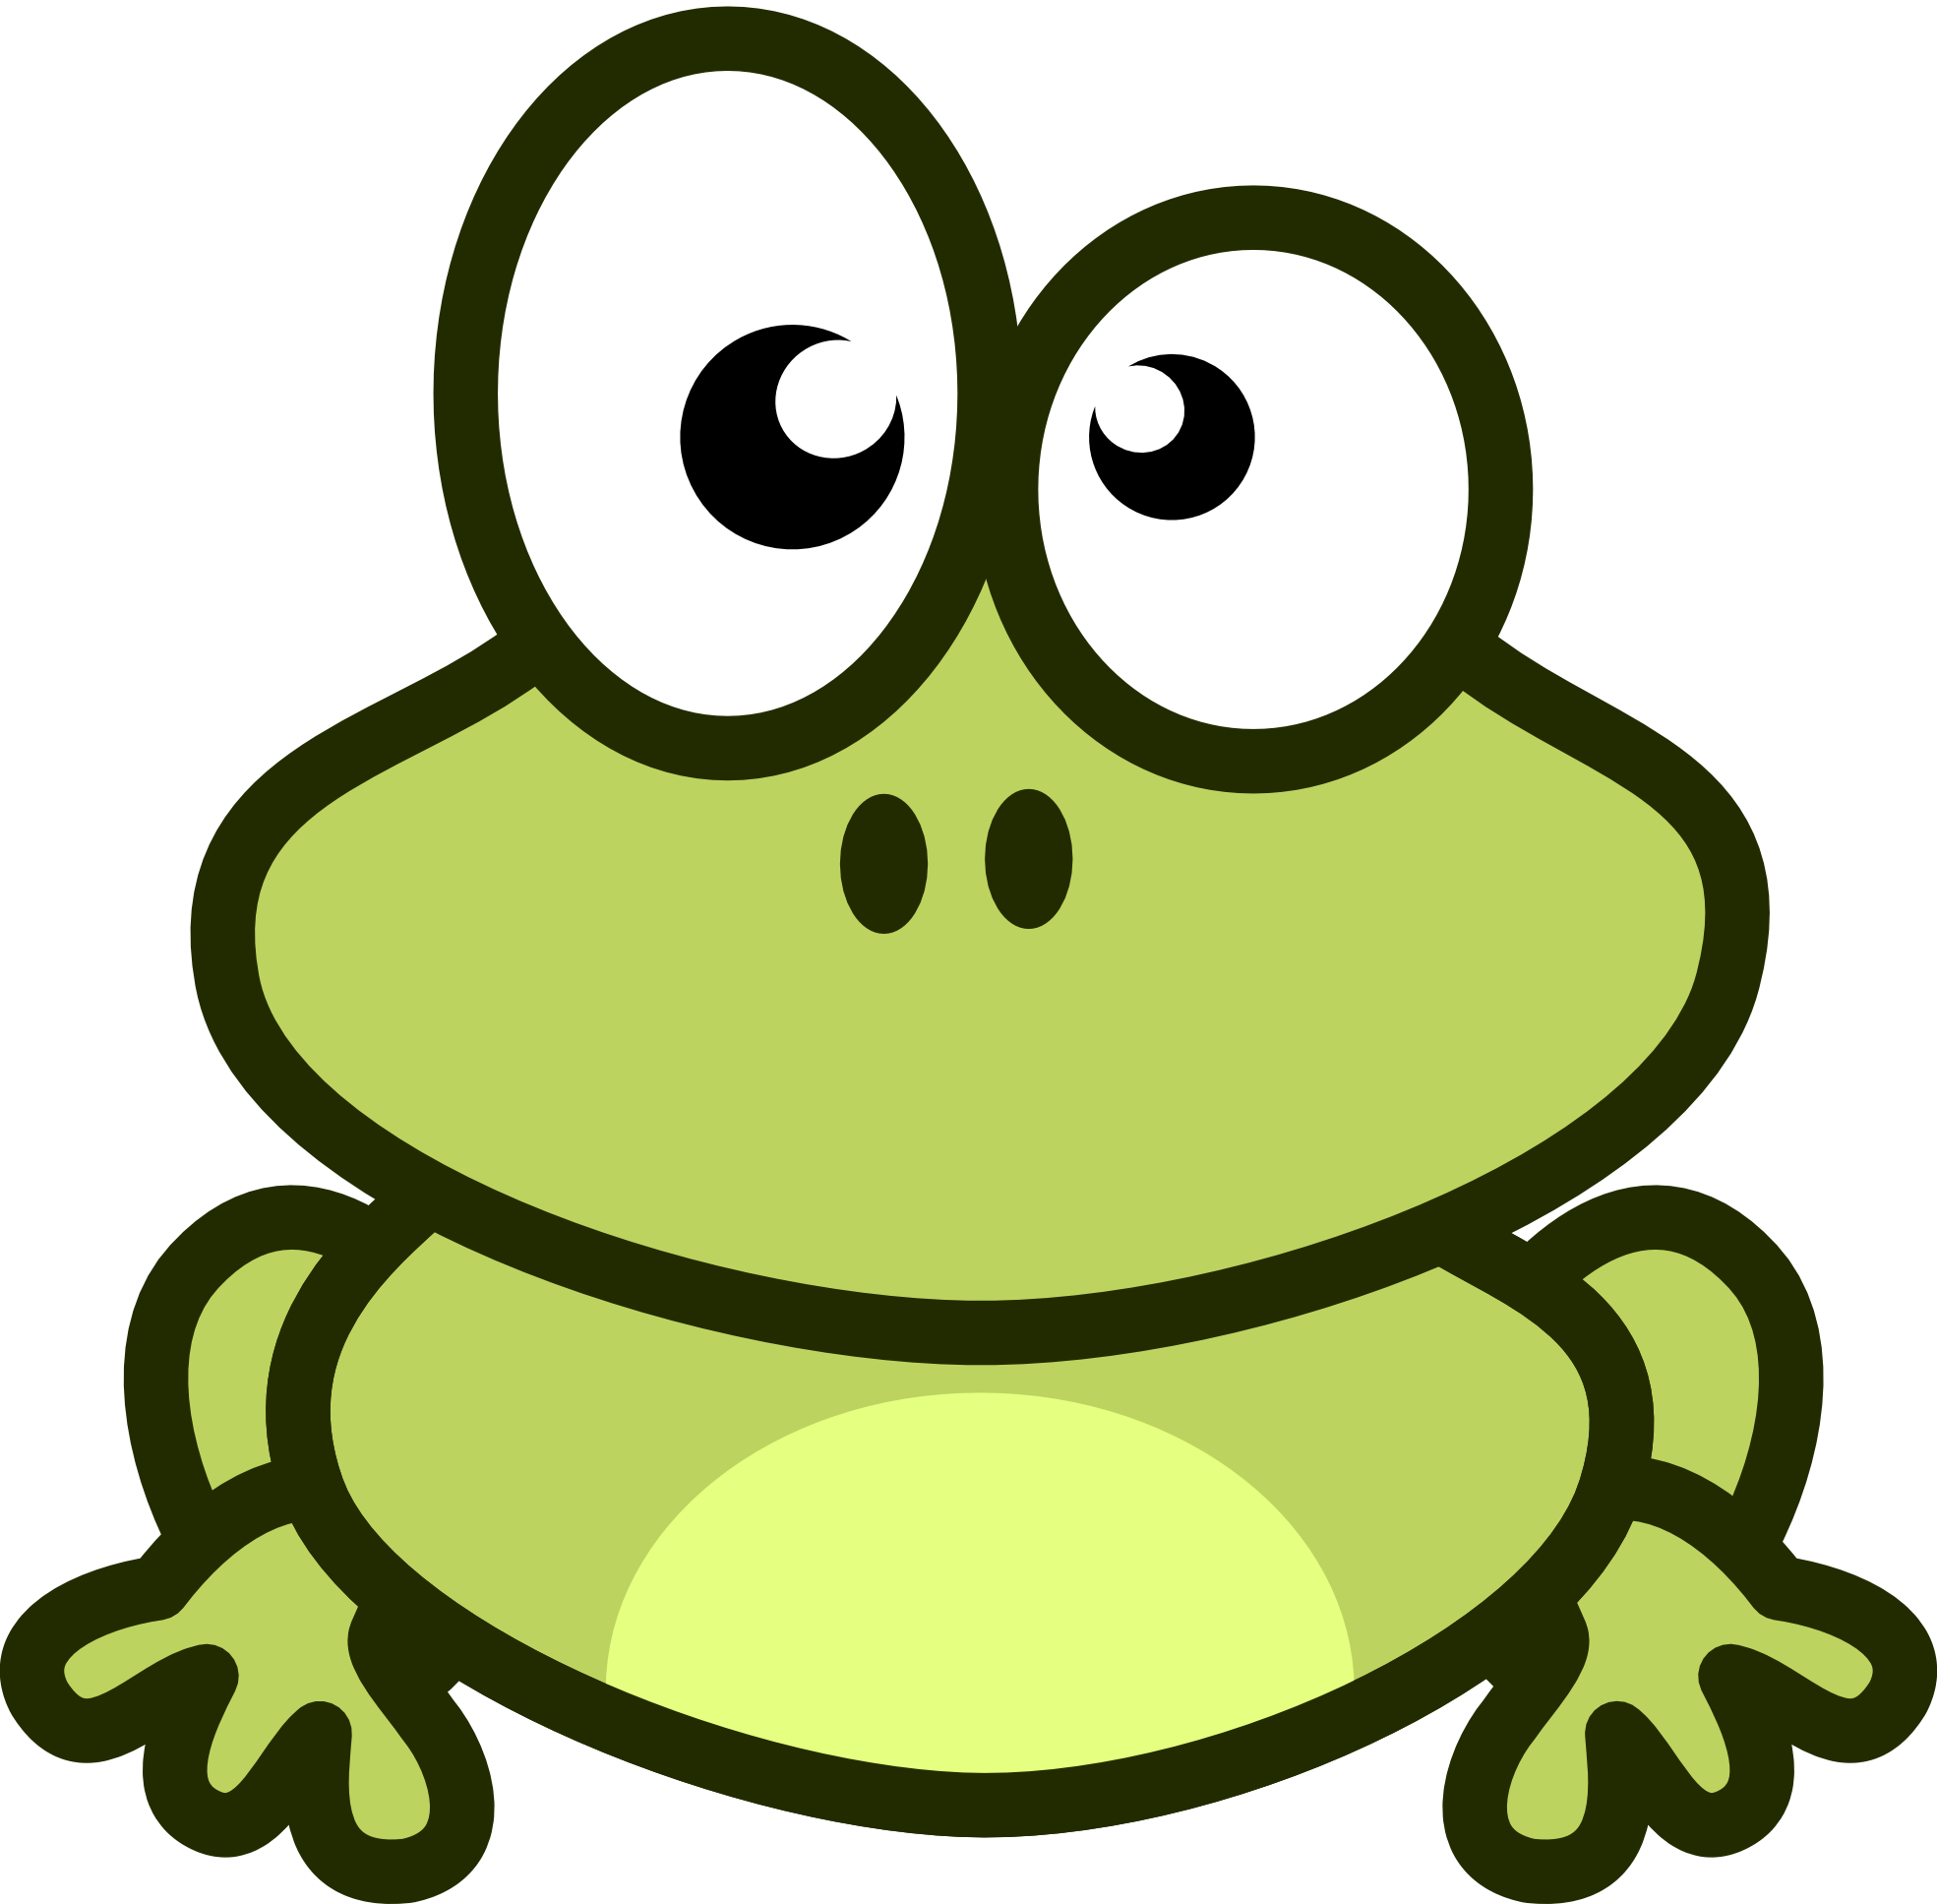 frog silhouette vector at getdrawings com free for personal use